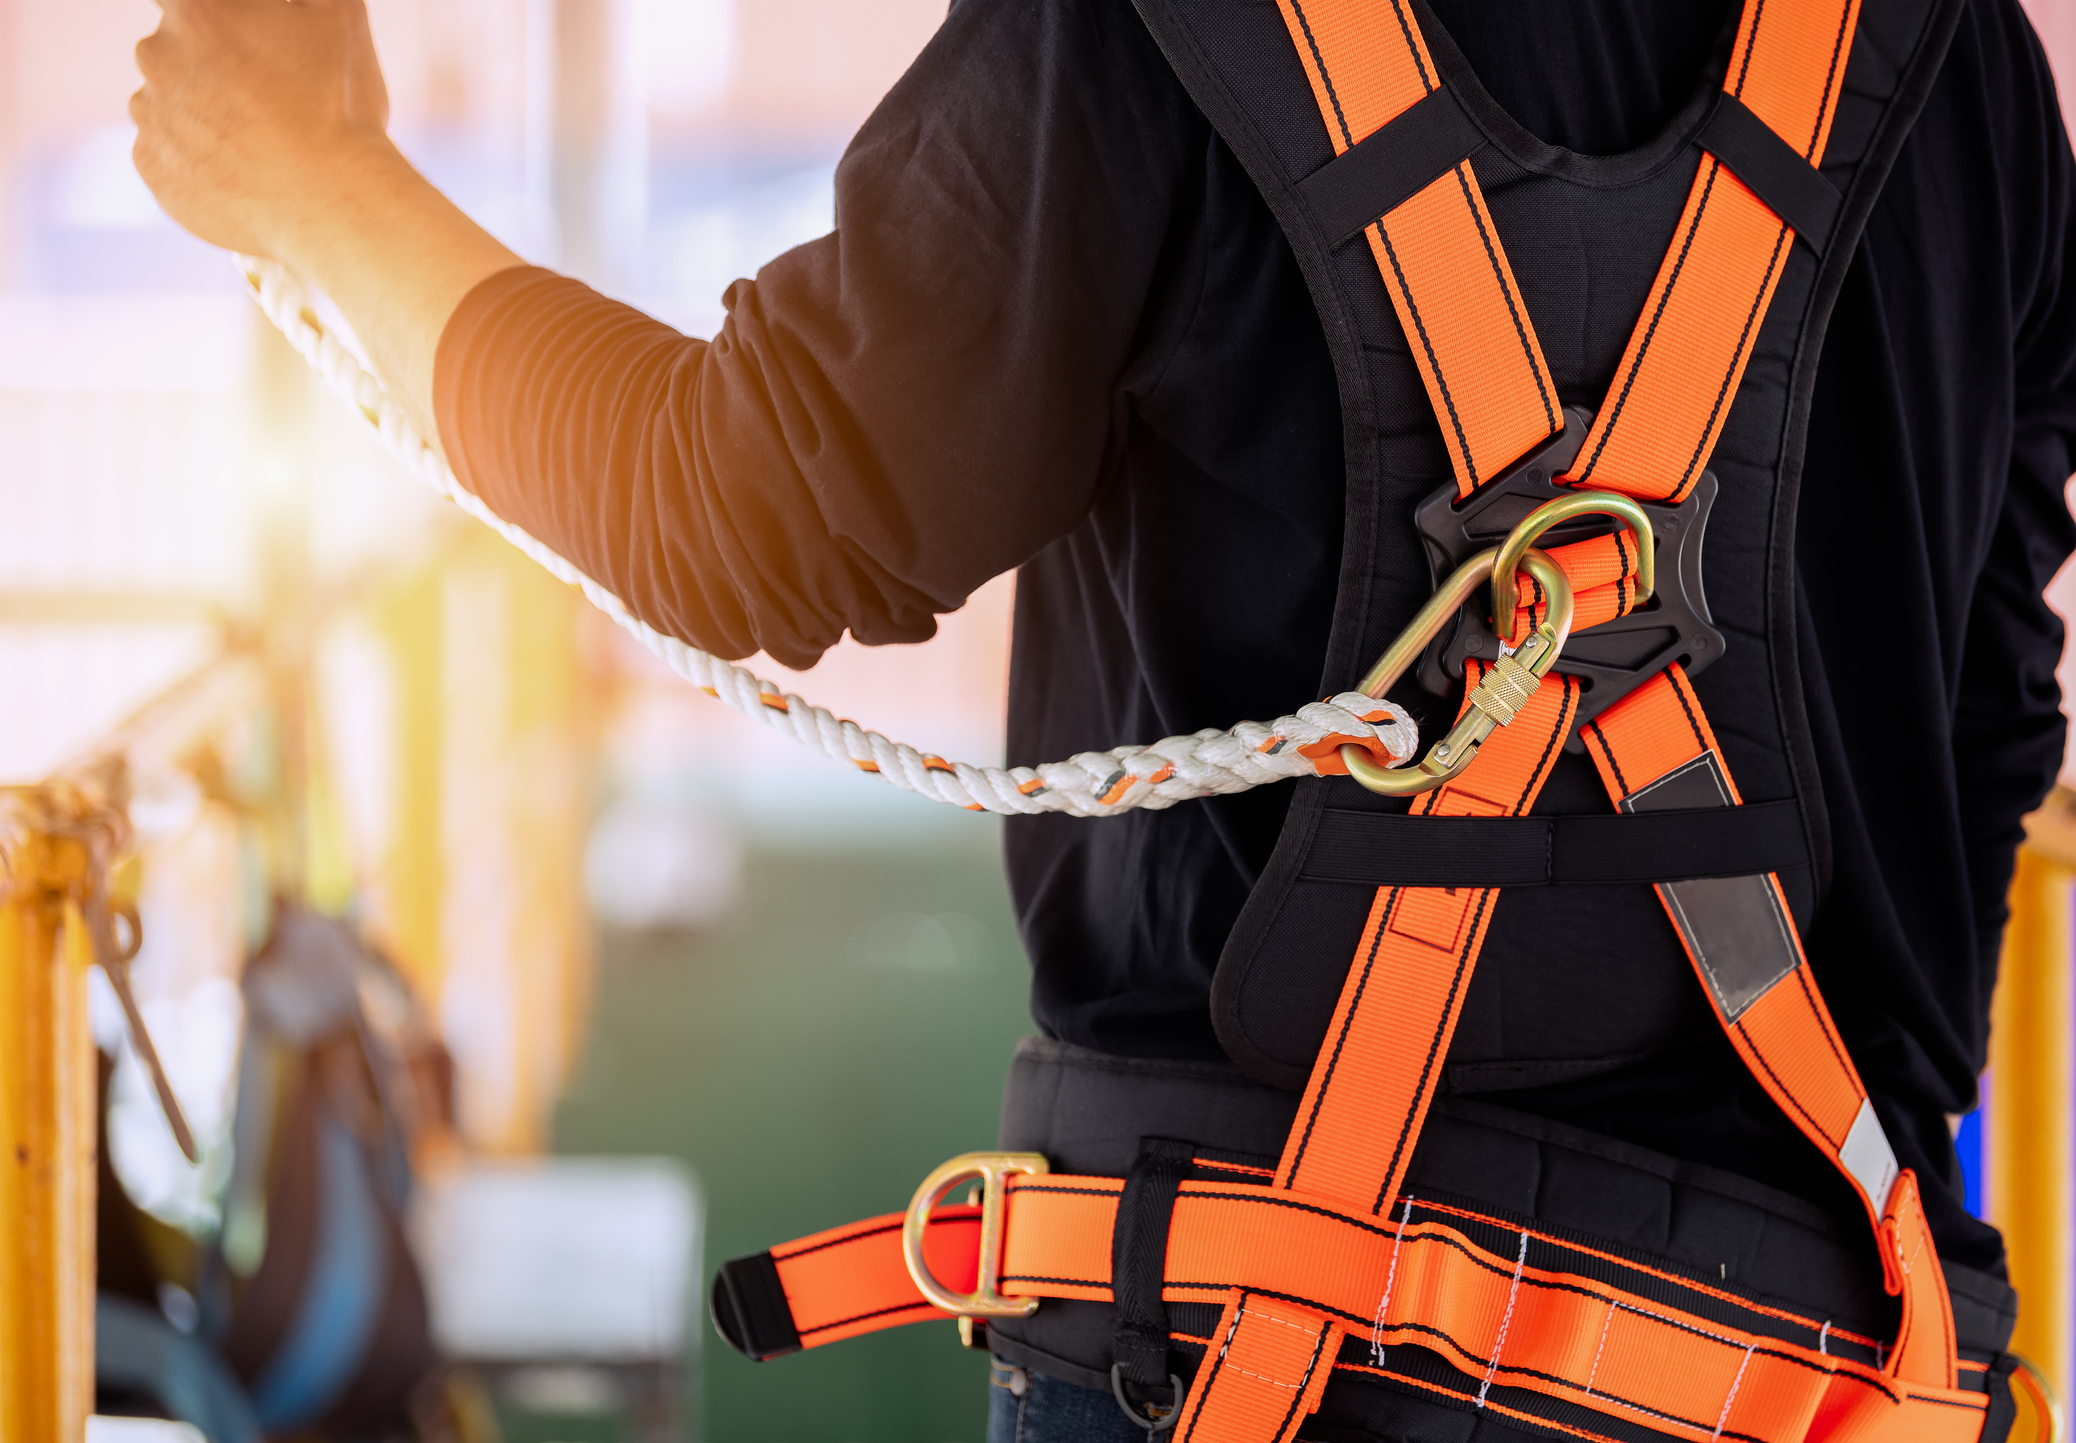 Construction worker wearing safety harness.